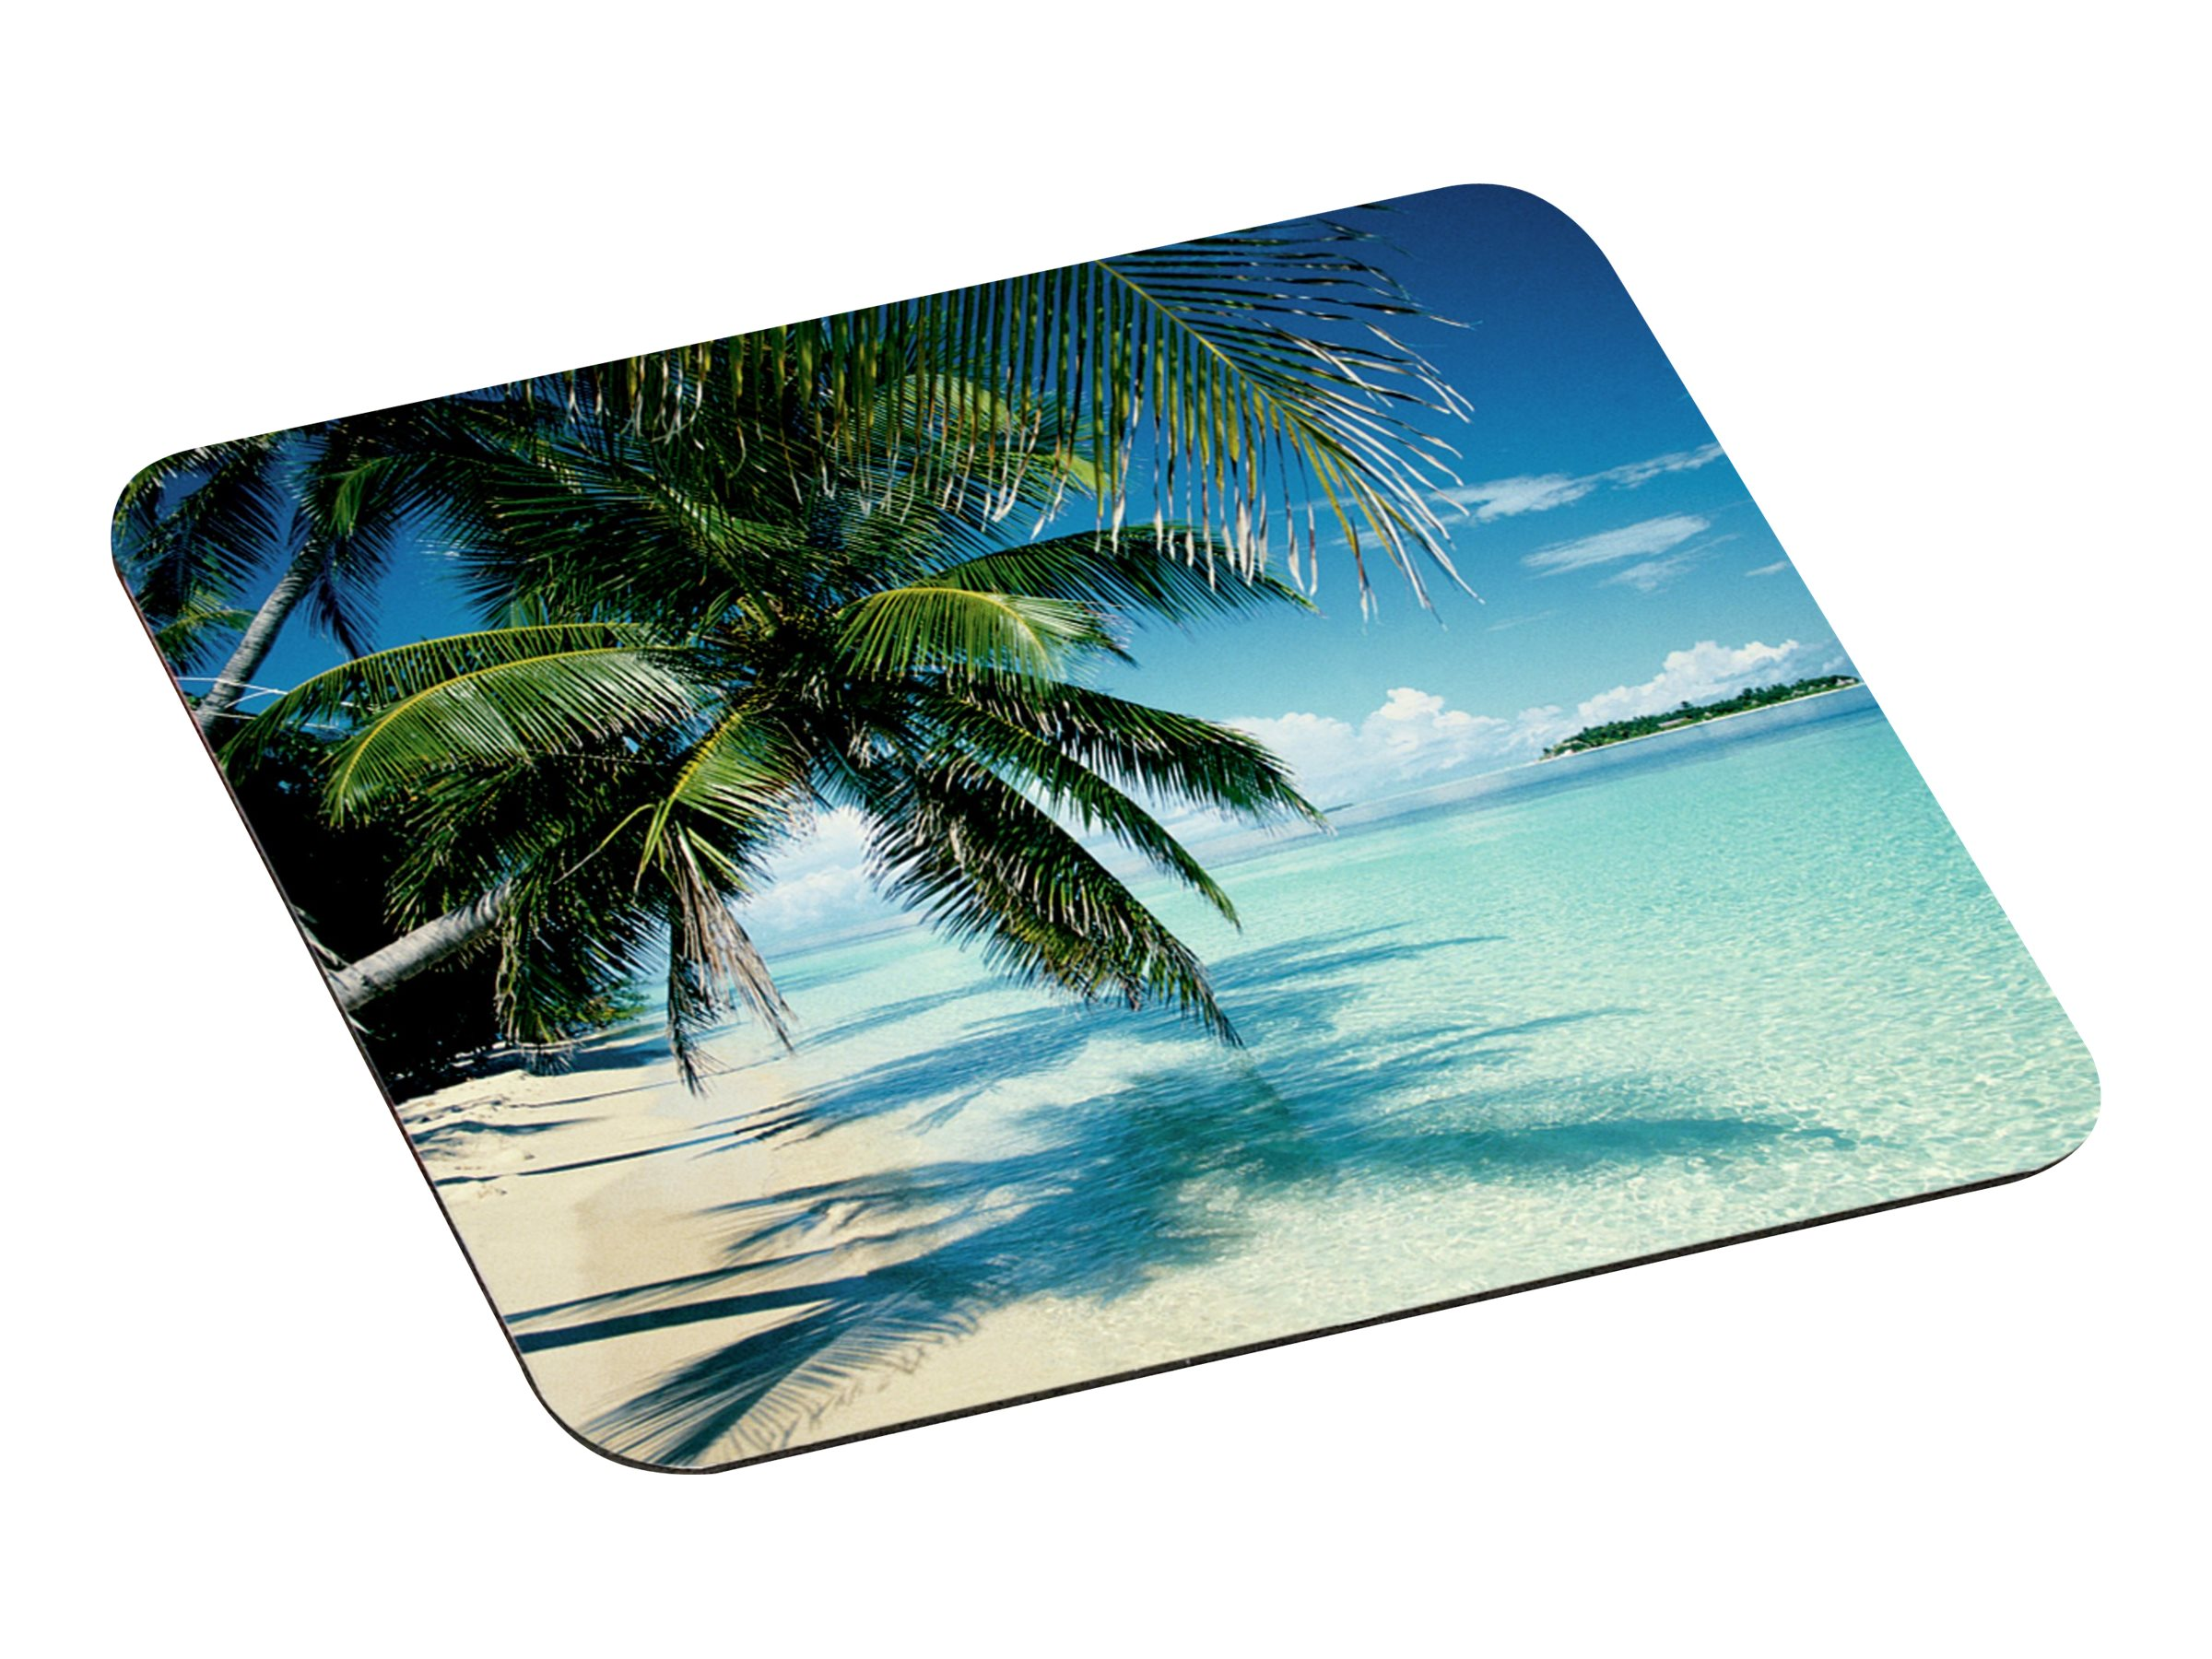 3M Foam Mouse Pad - Tropical Beach, MP114YL, 4917182, Ergonomic Products